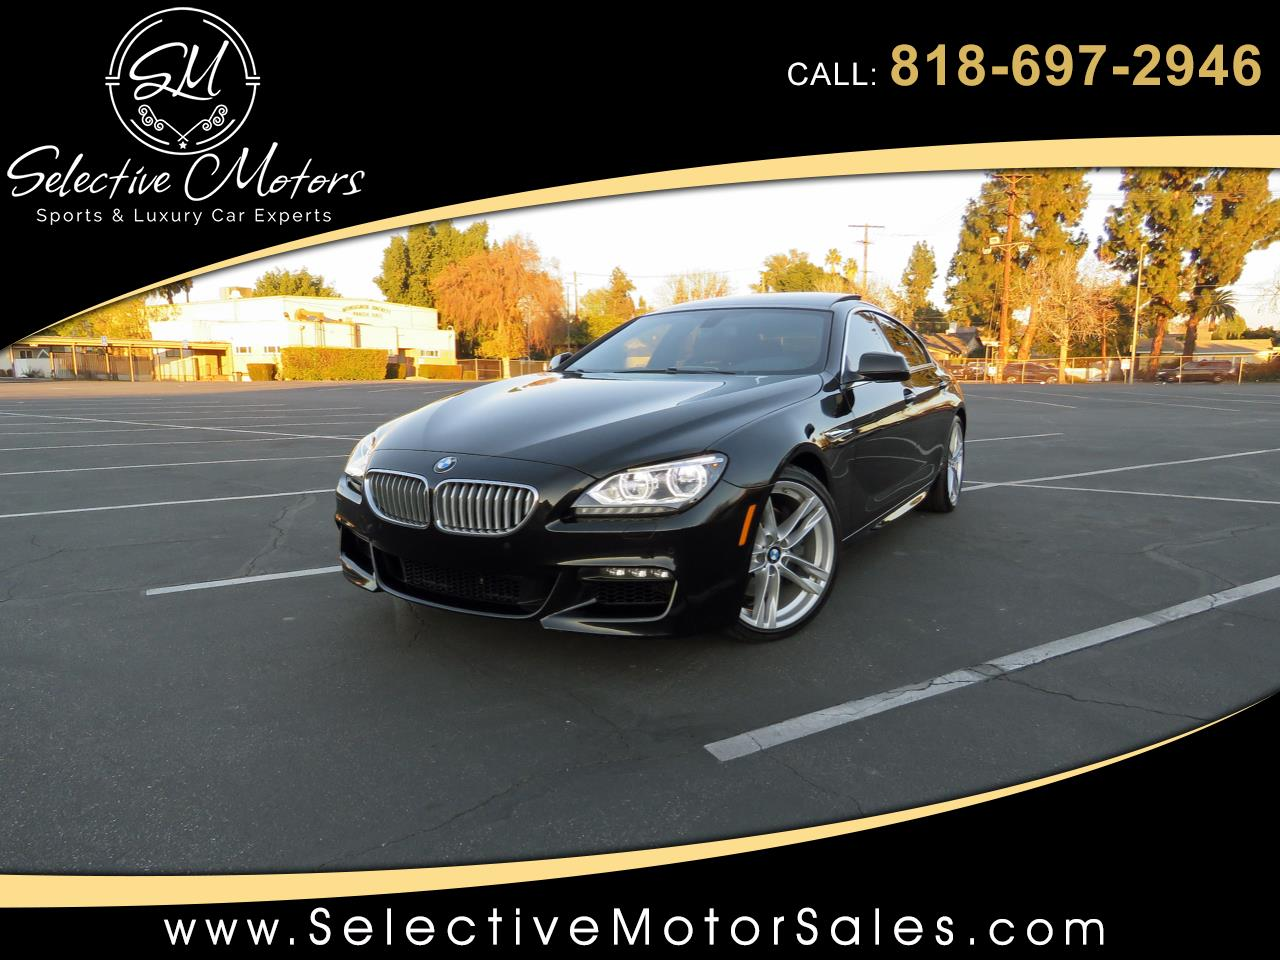 2013 BMW 6-Series 650i Gran Coupe M-Sport